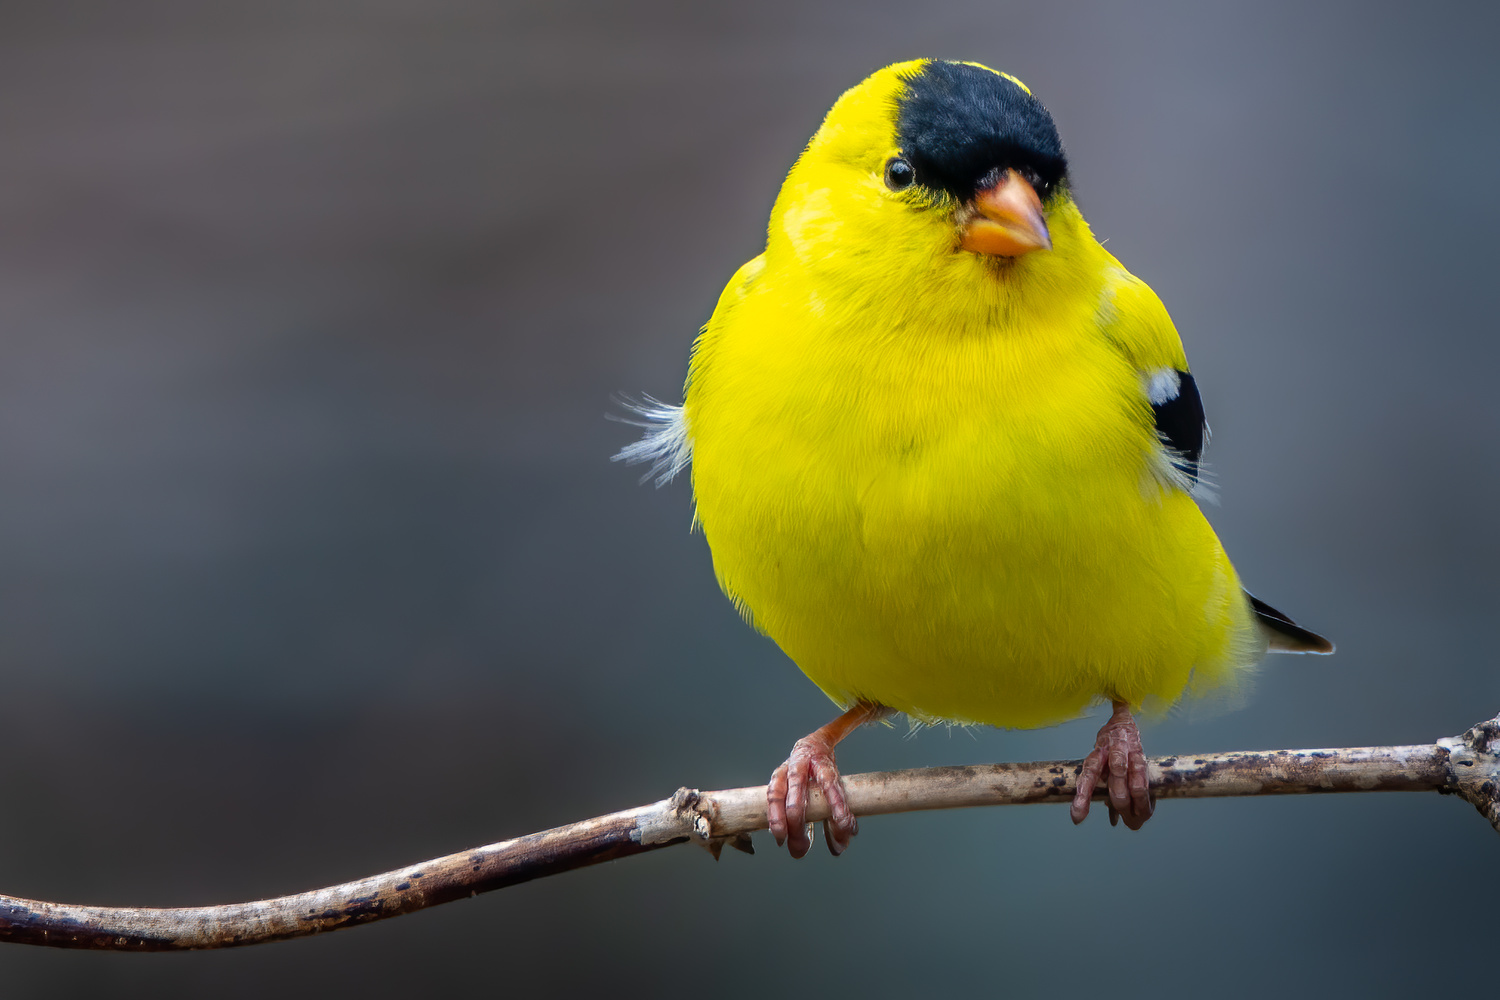 American Goldfinch by Jim Elve